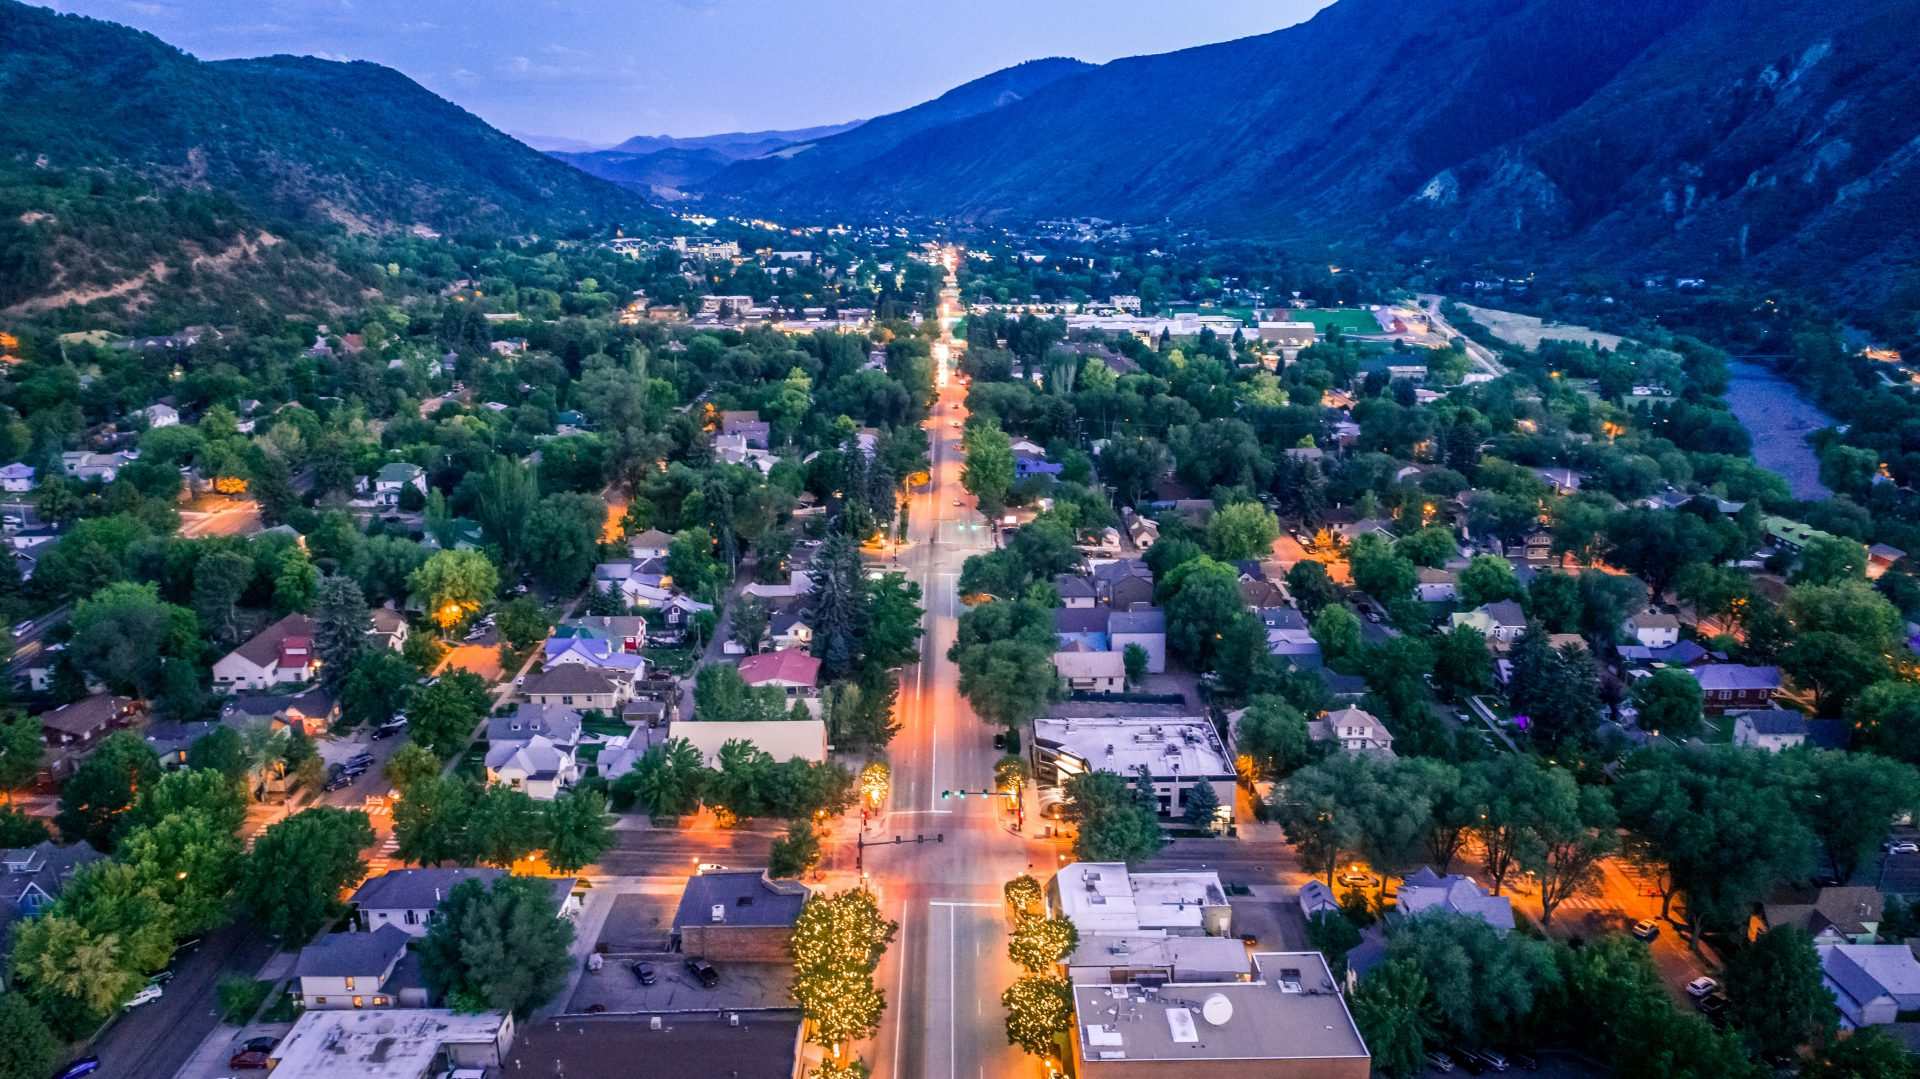 Glenwood Springs overhead view